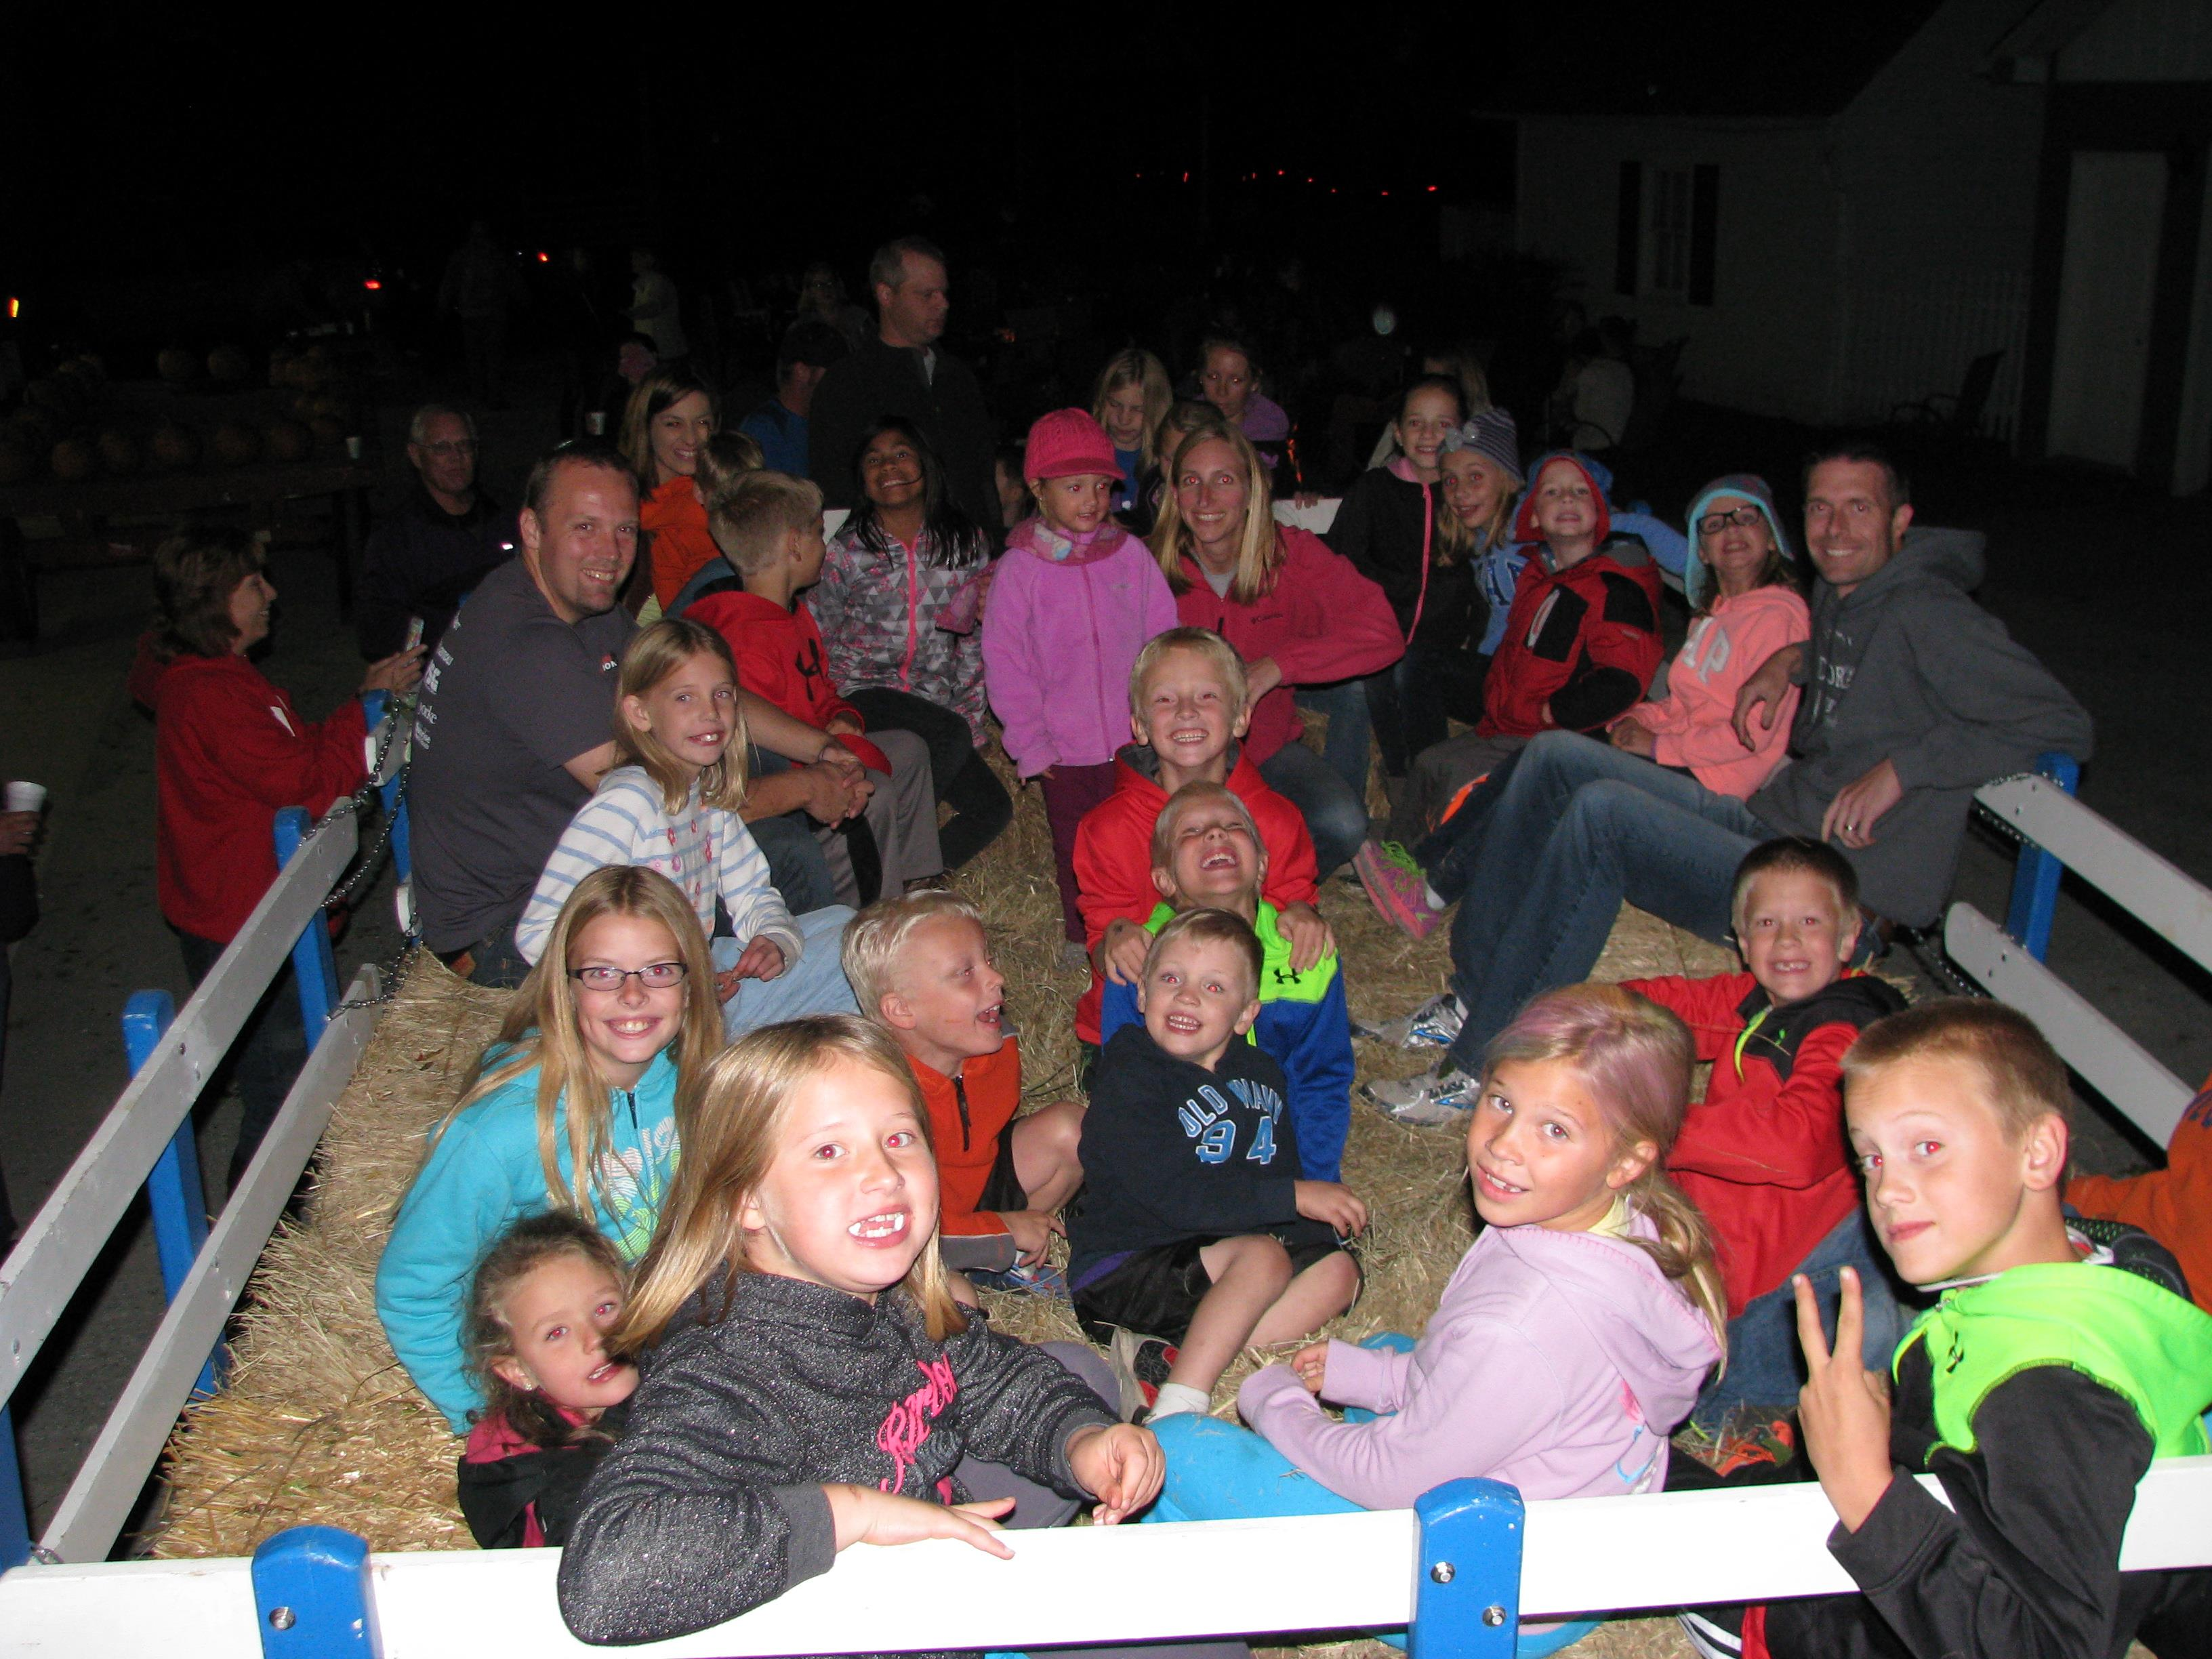 Family Night - 10/14/2015